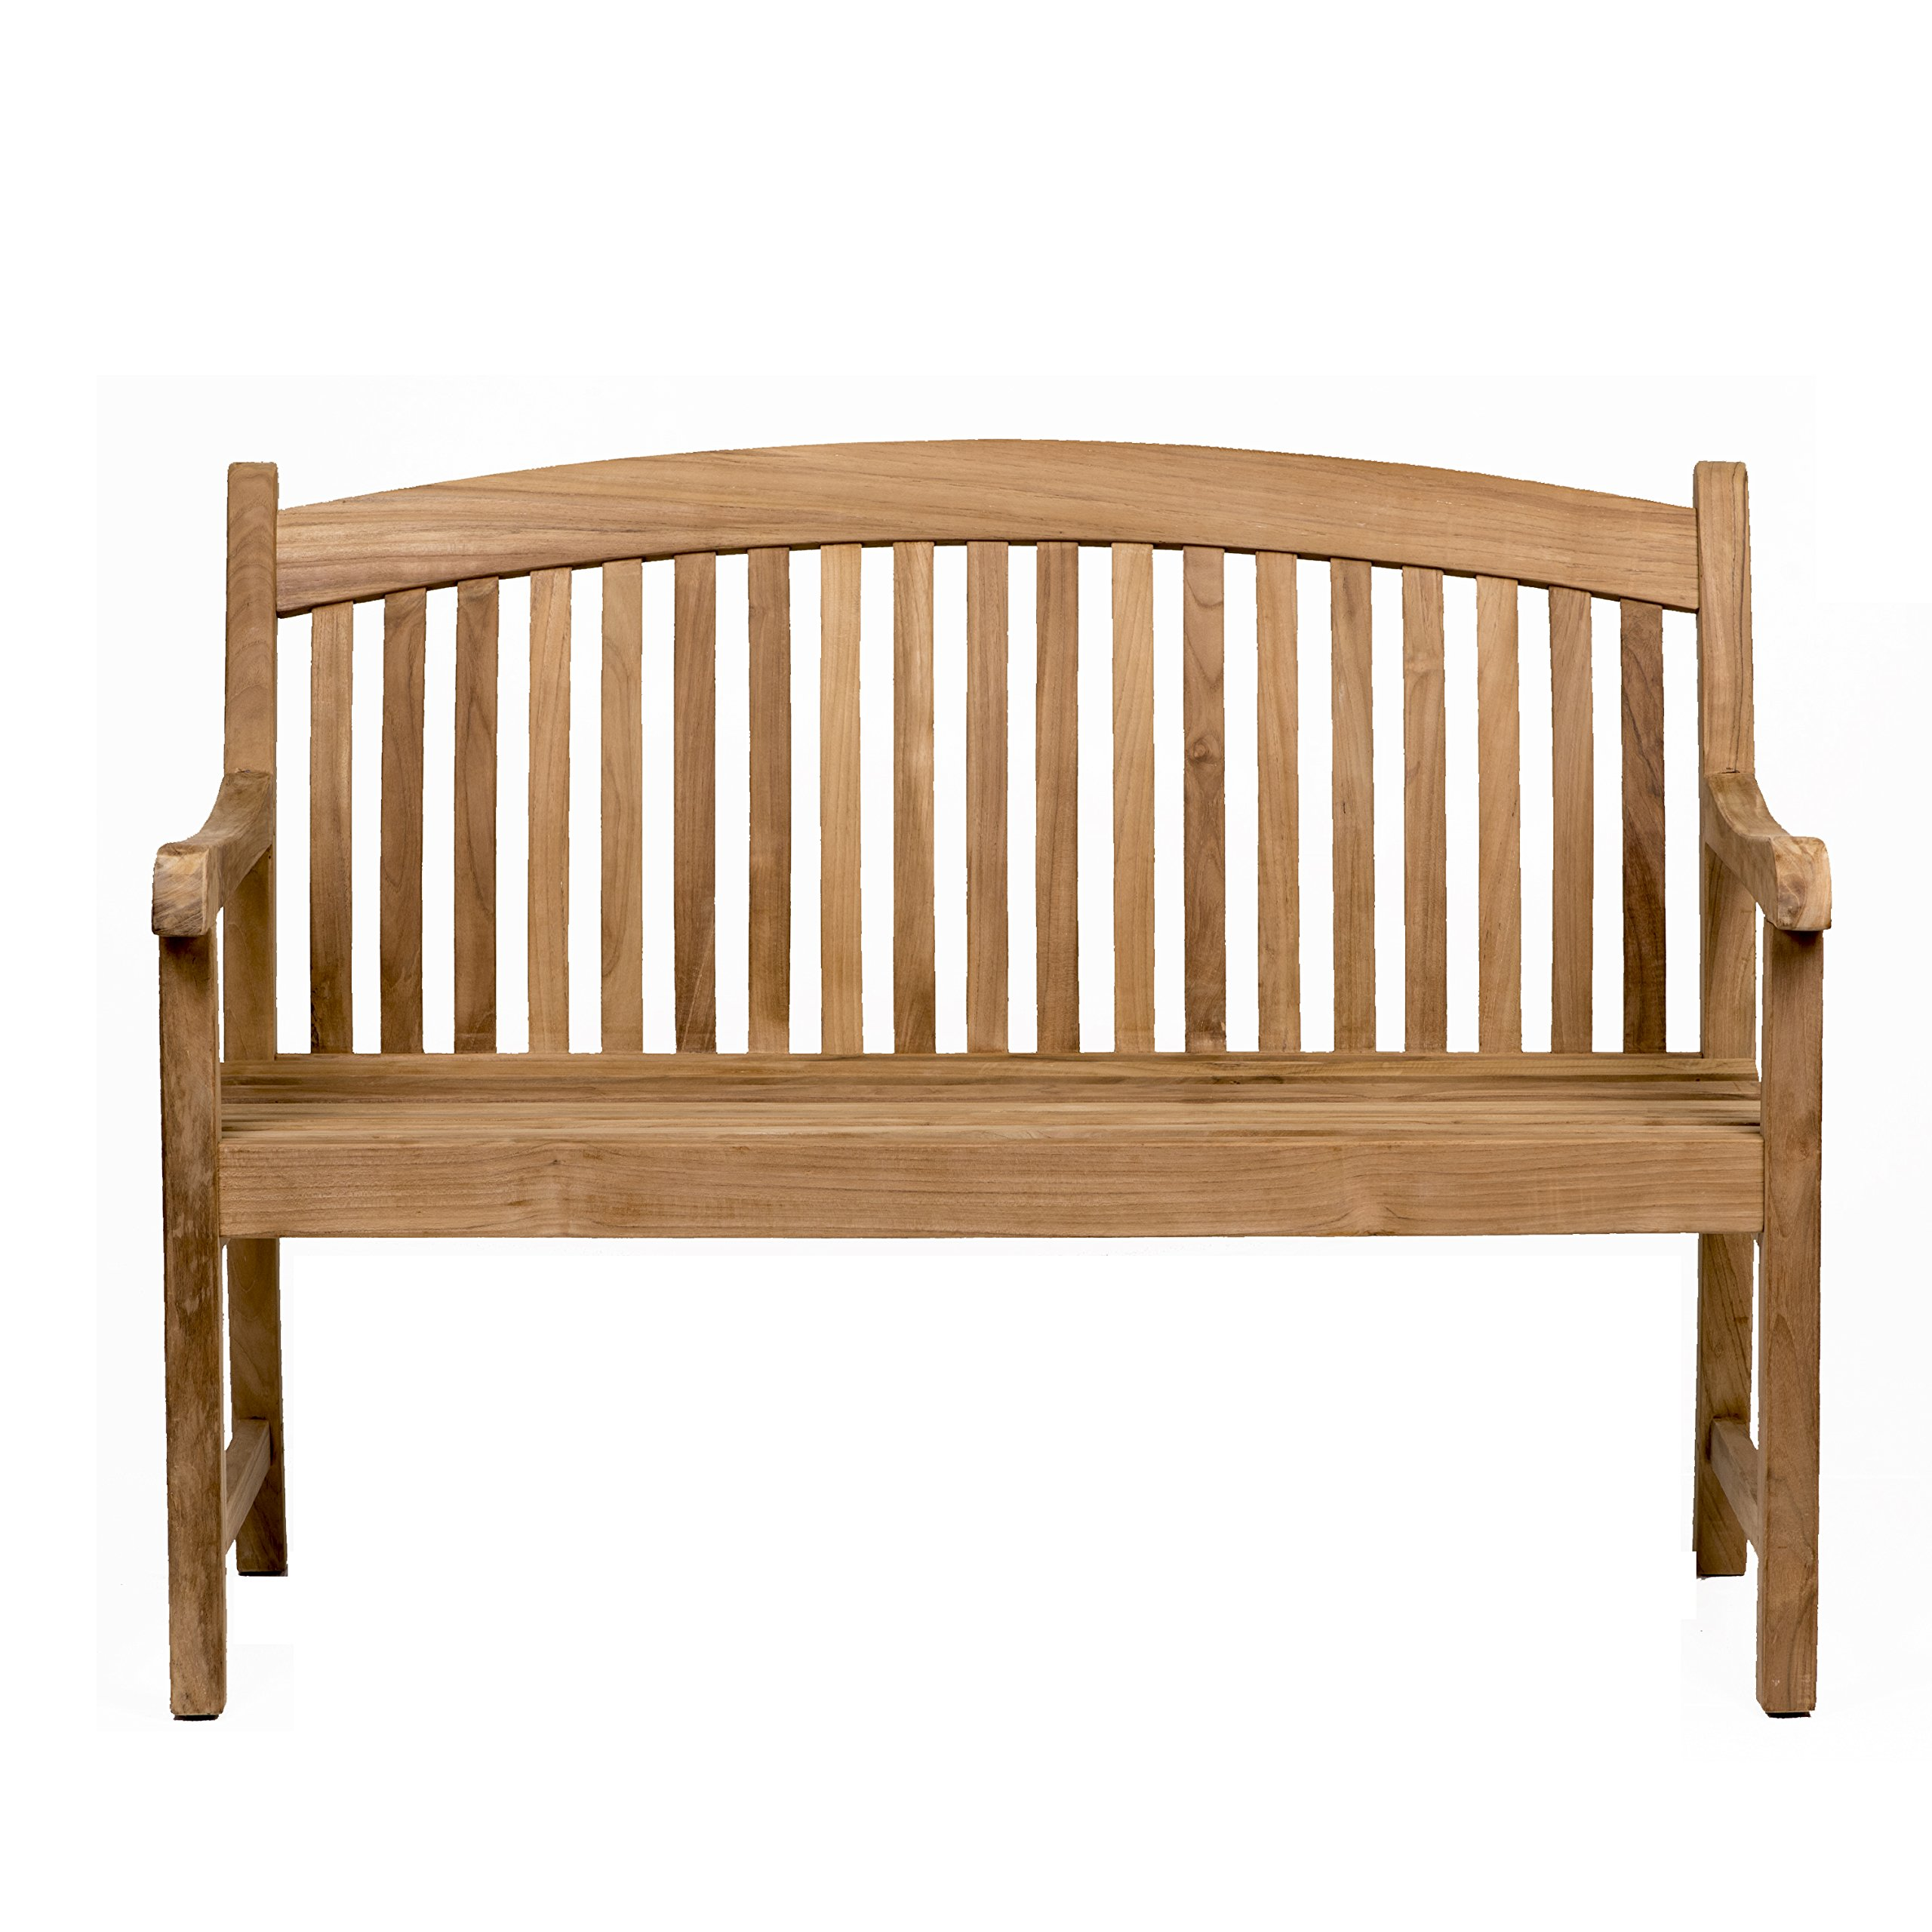 Amazonia Newcastle Patio Bench  Made of Real Teak  Perfect for backyards, Gardens or Parks, Light Brown